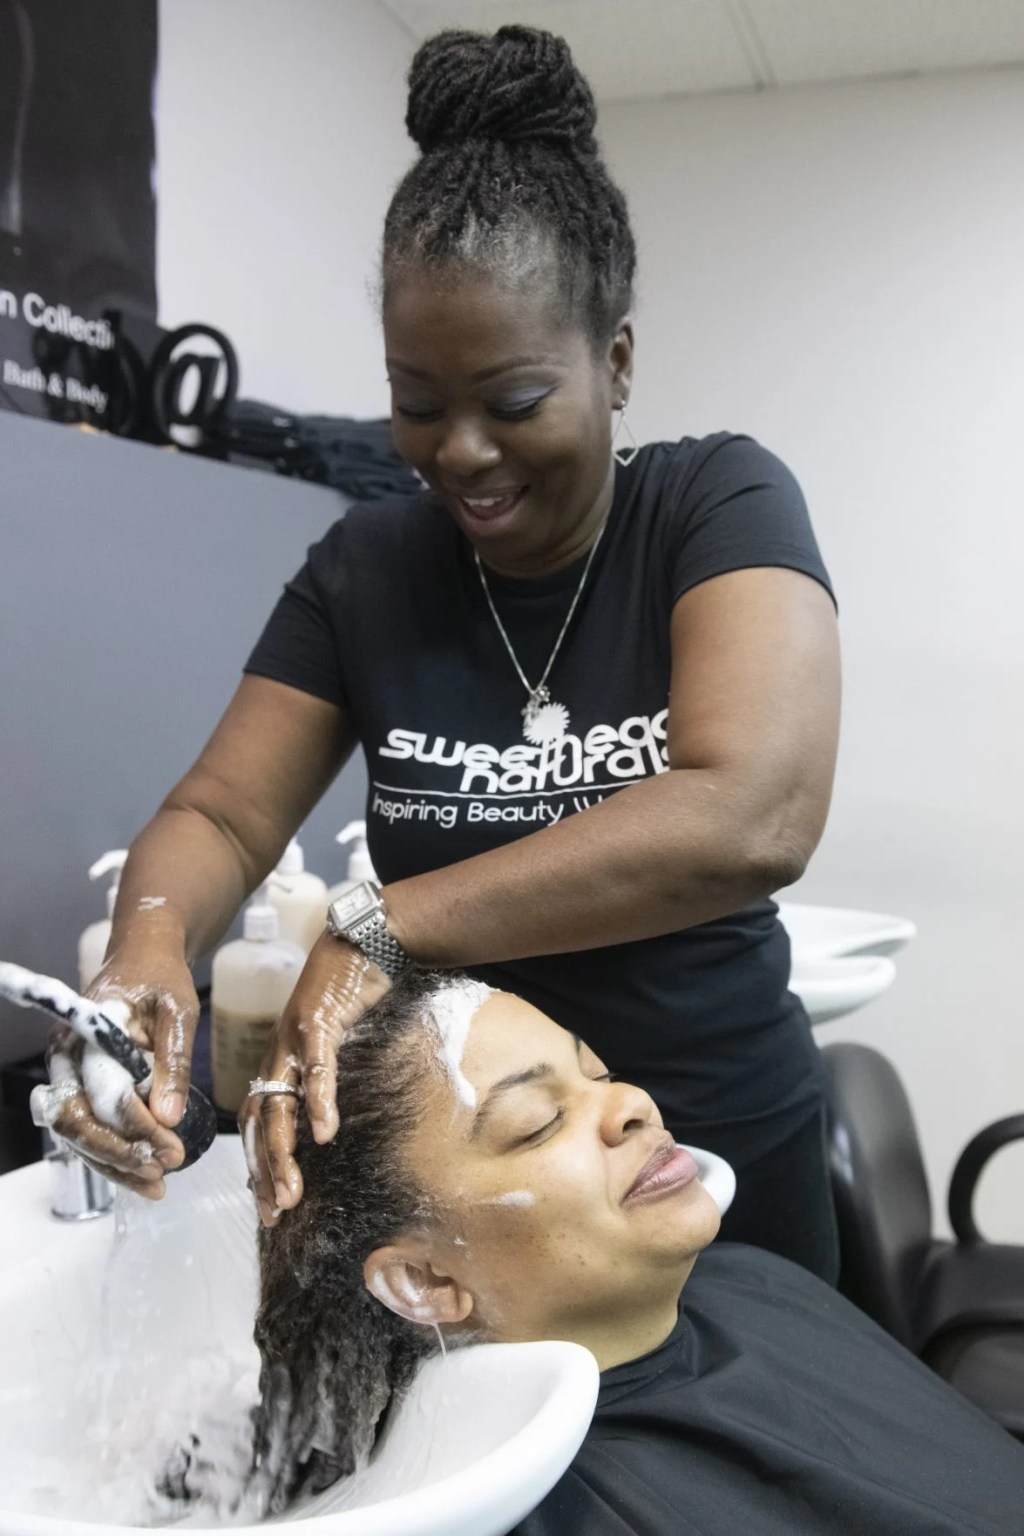 Natural Hair Salons In St Louis Mo : natural, salons, louis, Fight, Black,, Natural, Hair., 'People, Thought, Minds', Local, Business, Stltoday.com